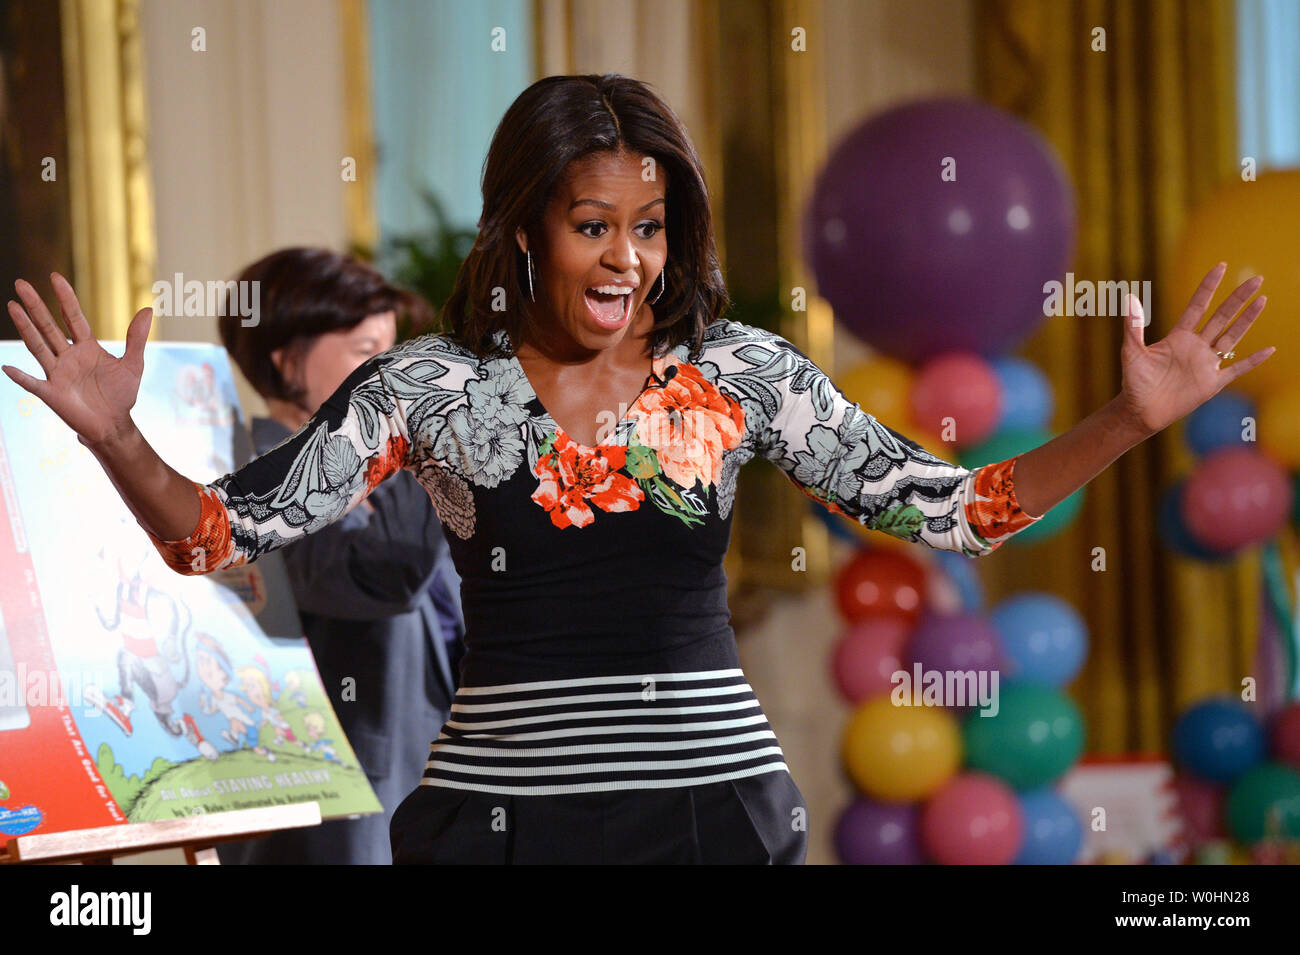 First Lady Michelle Obama arrives to read Dr. Seuss's book, 'Oh, The Things You Can Do That Are Good for You: All About Staying Healthy' to a group of school children in the East Room at the White House in Washington, D.C. on January 21, 2015. The event was part of the First Lady's Let's Move! initiative to inform children about making health life decisions and staying active. Photo by Kevin Dietsch/UPI - Stock Image